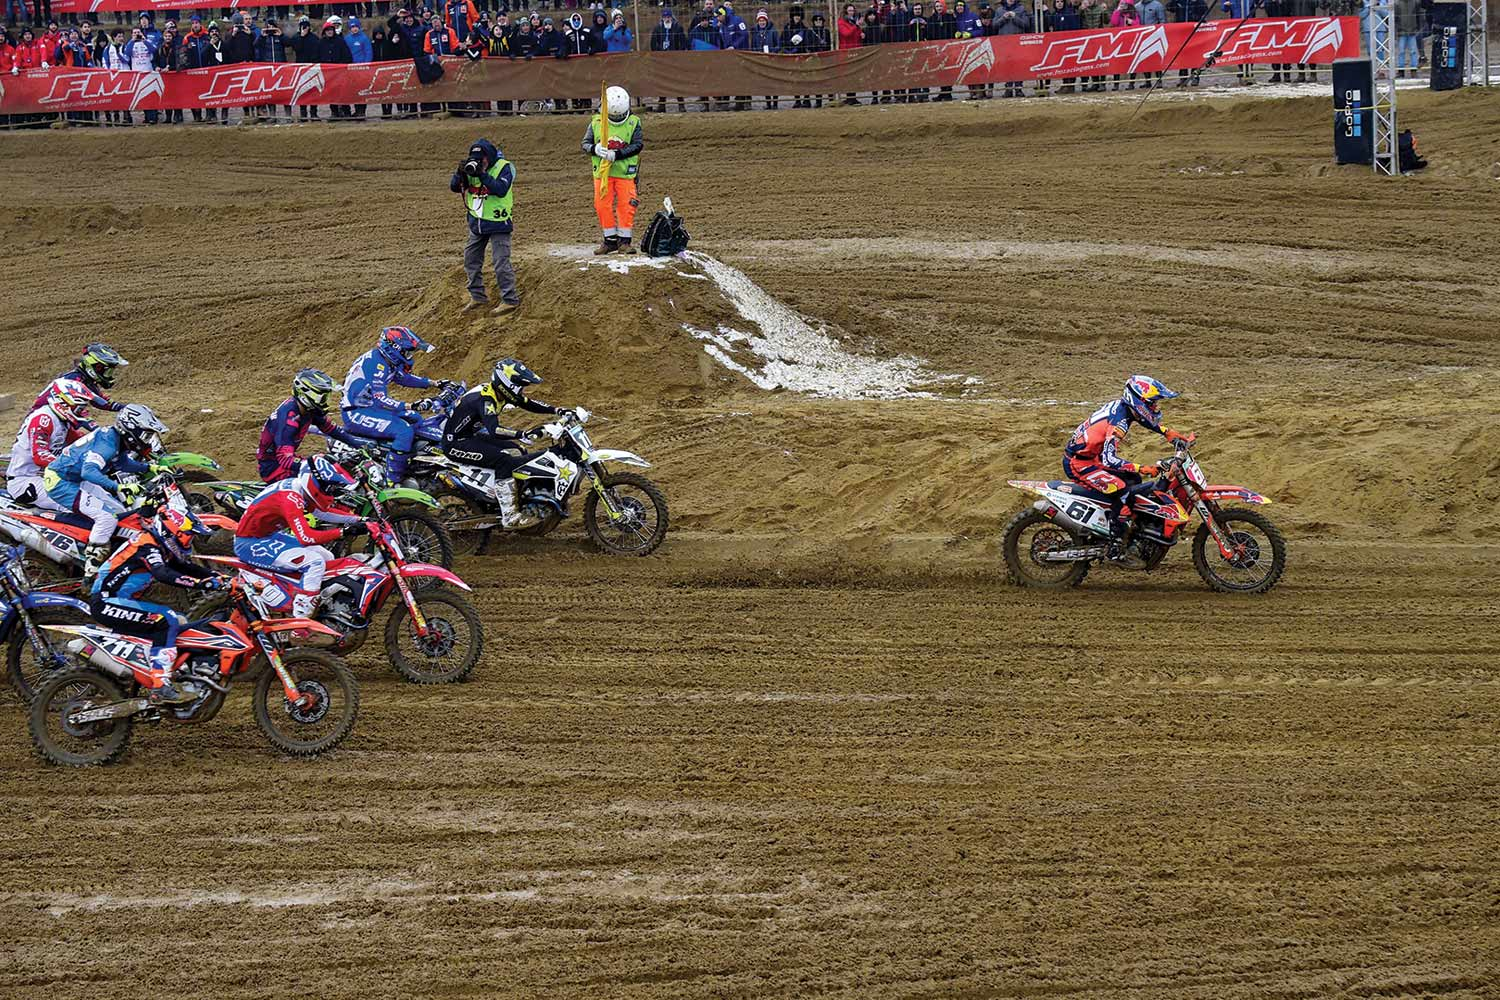 Check out the massive, Mike Alessi-sized holeshot that Jorge Prado pulled to start his 2019 preseason at the Internazionali D'Italia Motocross in Montova, Italy.